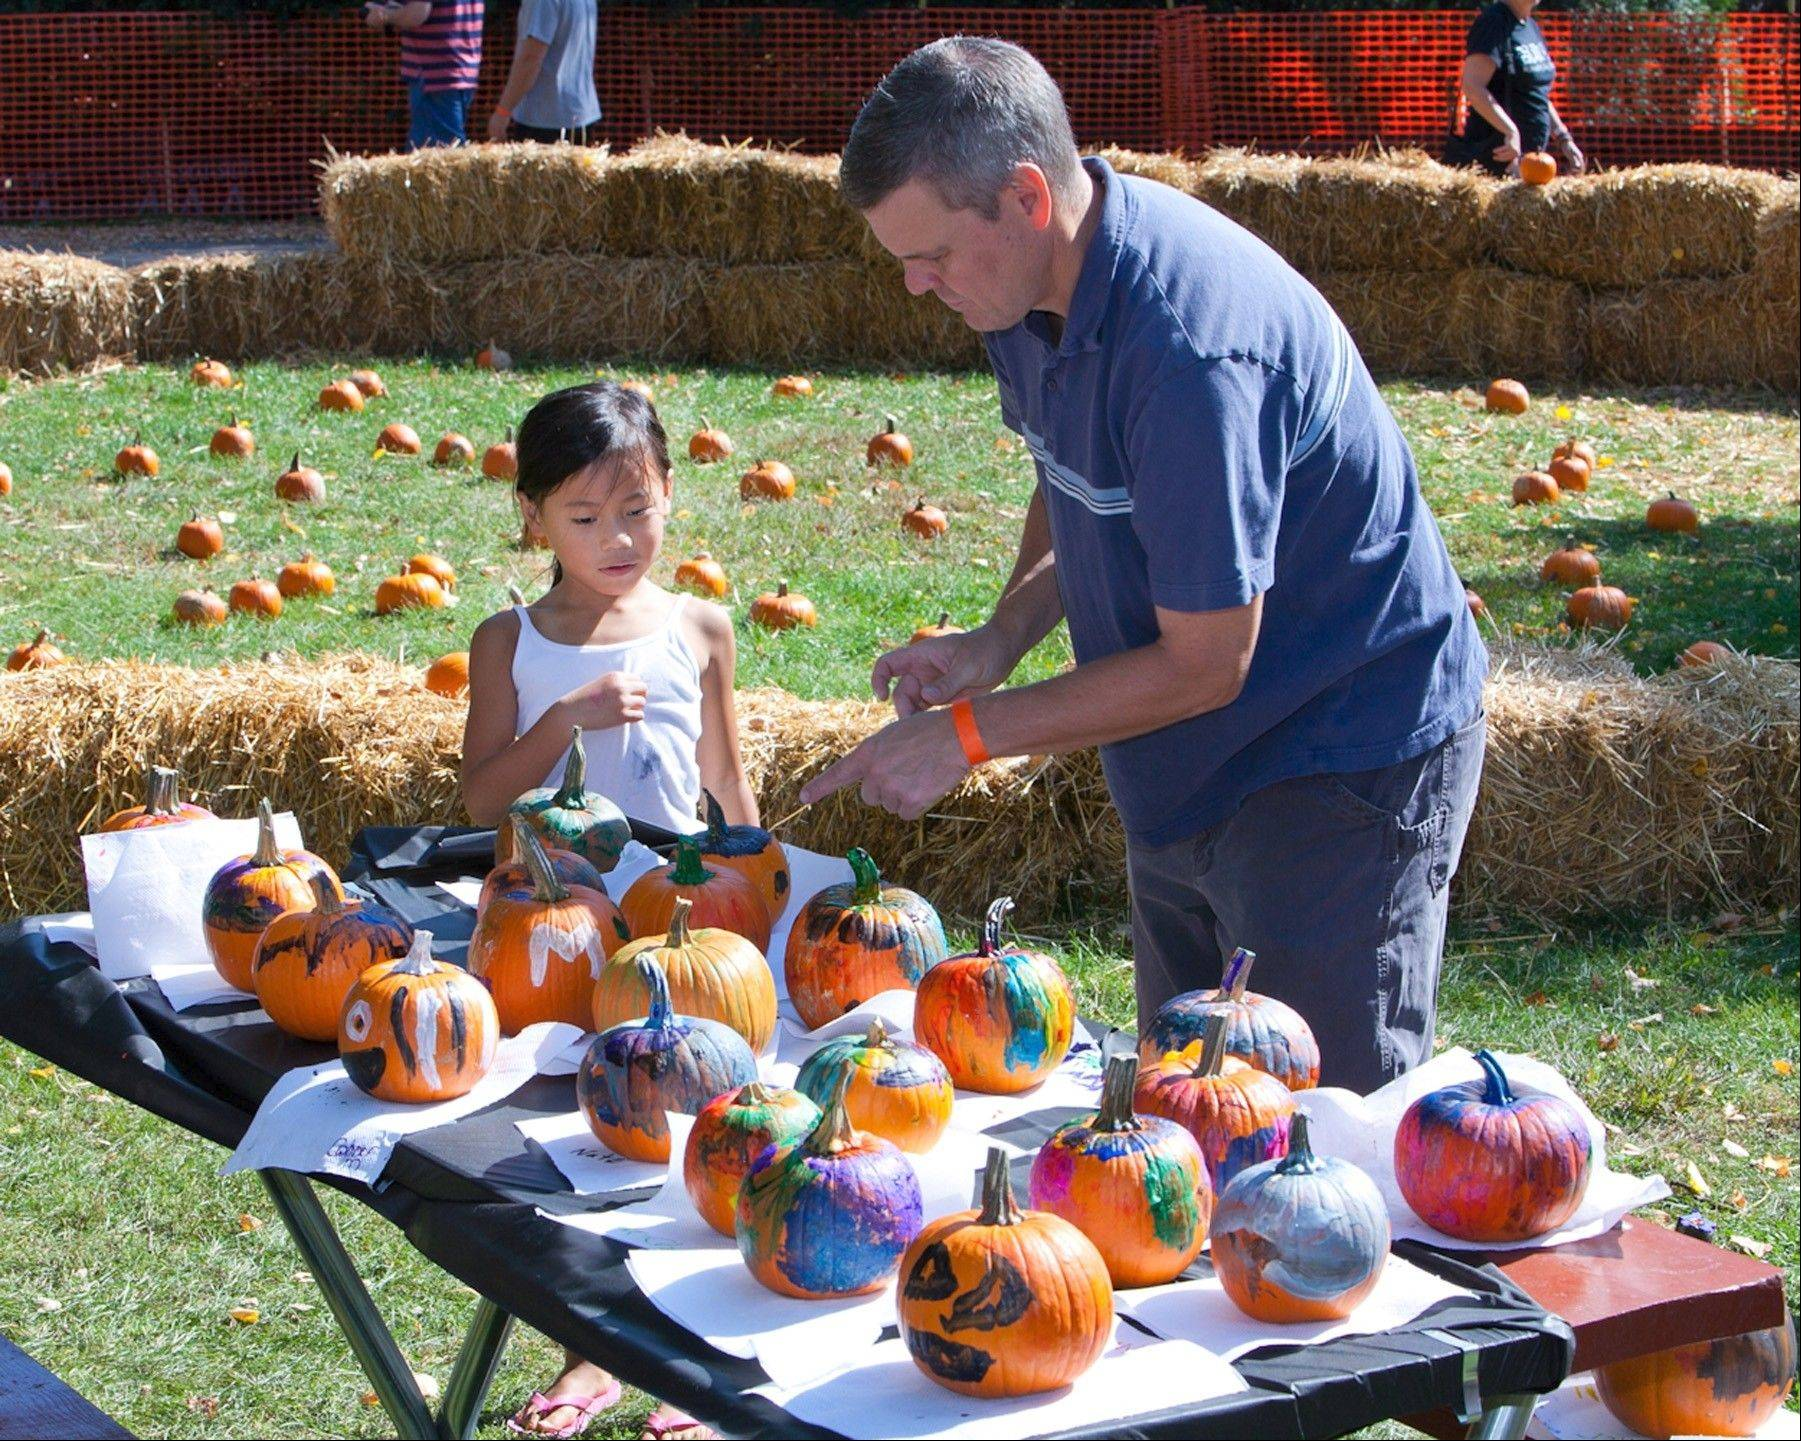 Pumpkin Weekends -- at Blackberry Farm throughout October -- are all about fall, with a pumpkin patch, train rides and many more festive activities to celebrate the season and the spirit of Halloween.